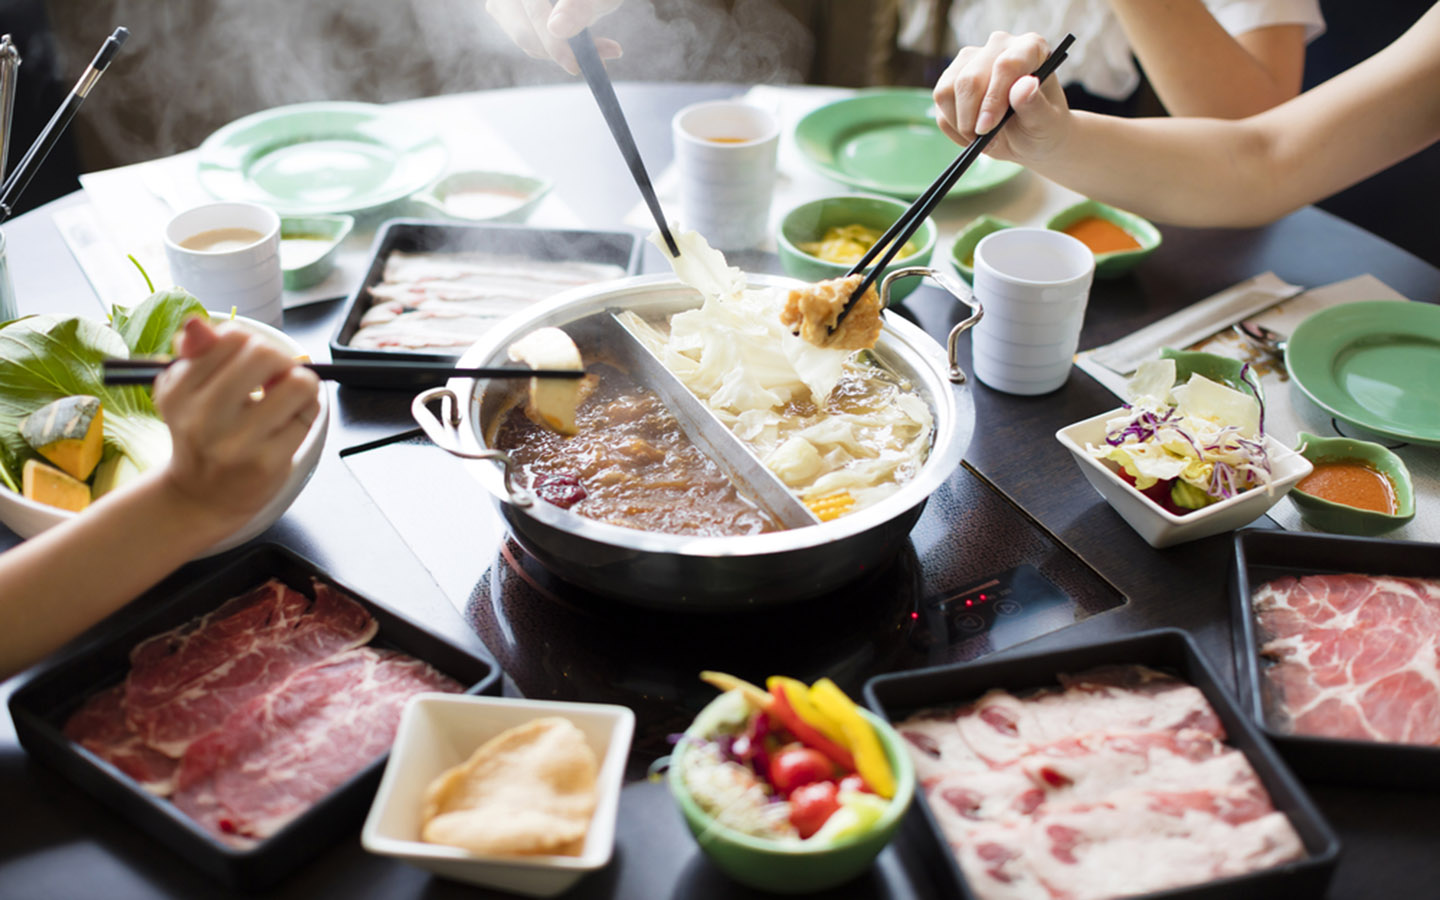 People are enjoying hot pot in a restaurant in Dubai